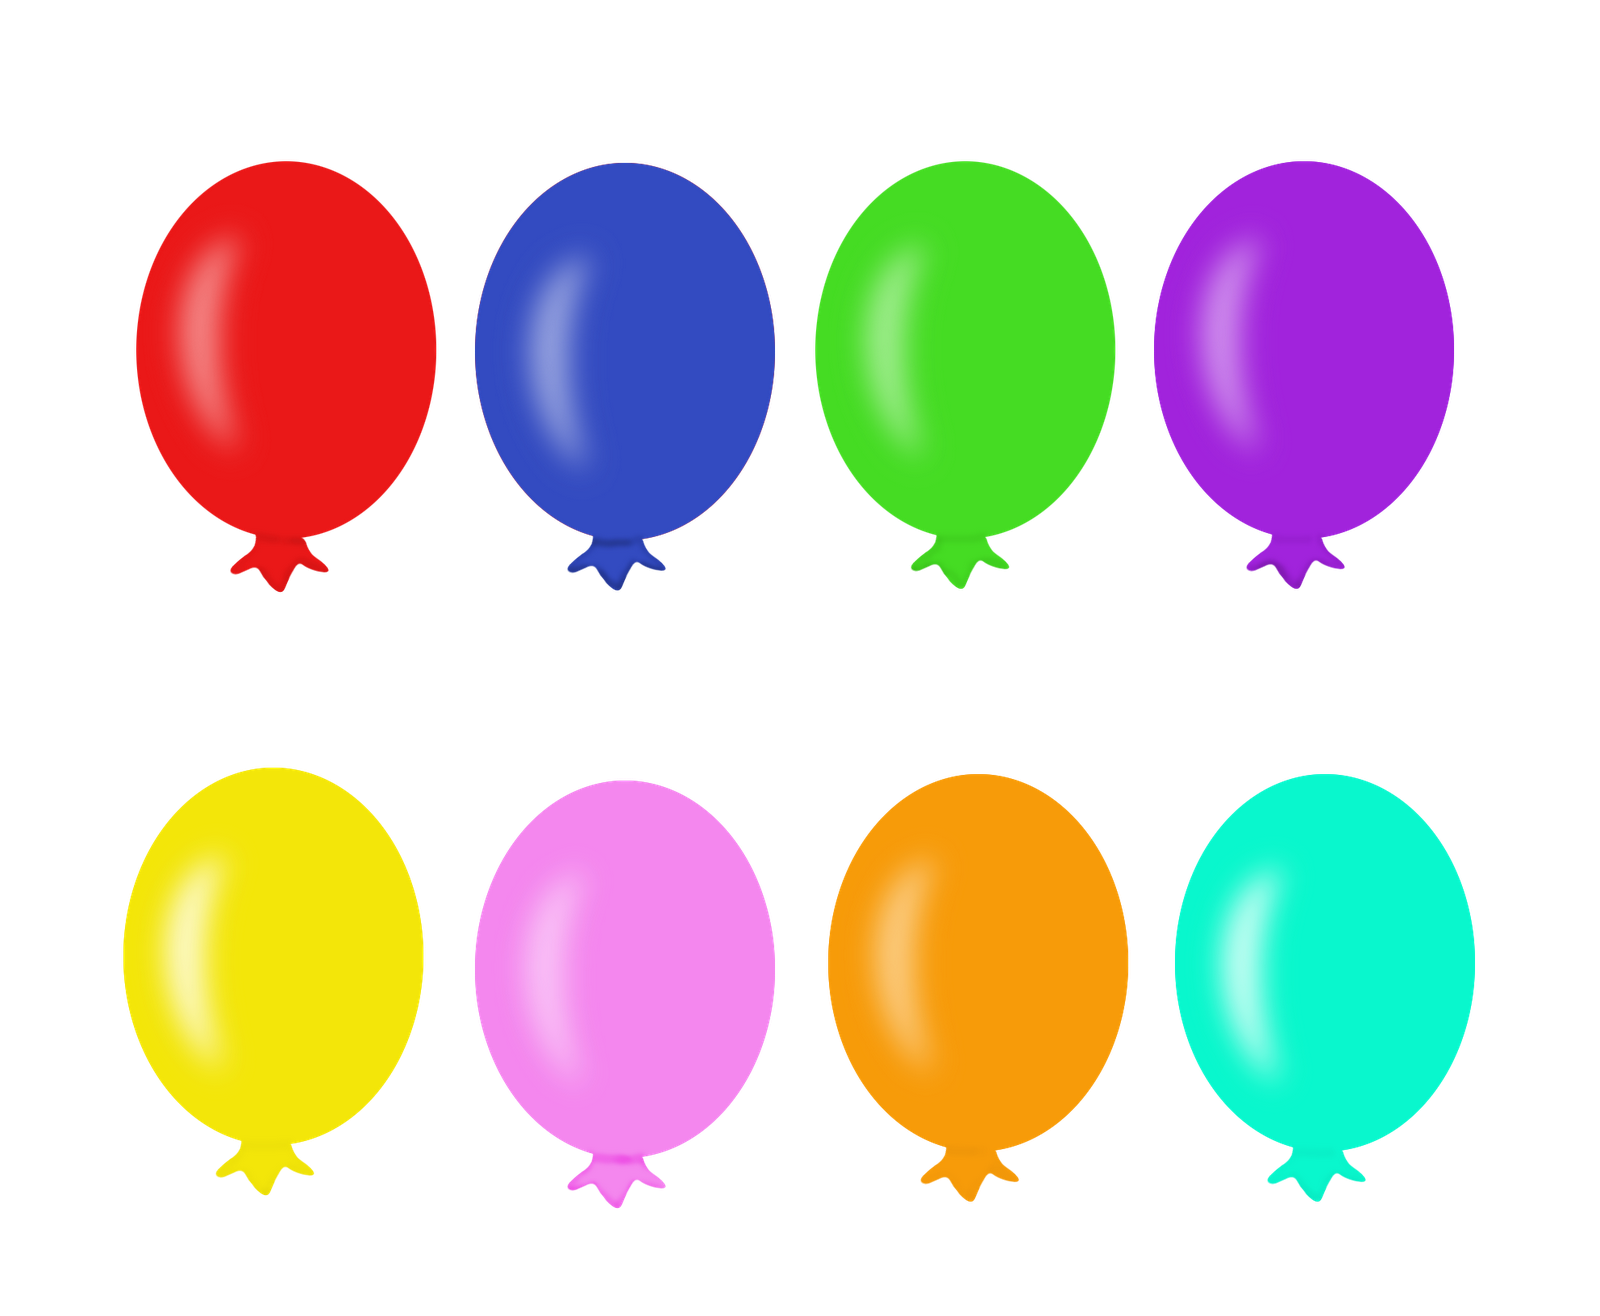 Superb image pertaining to balloons printable